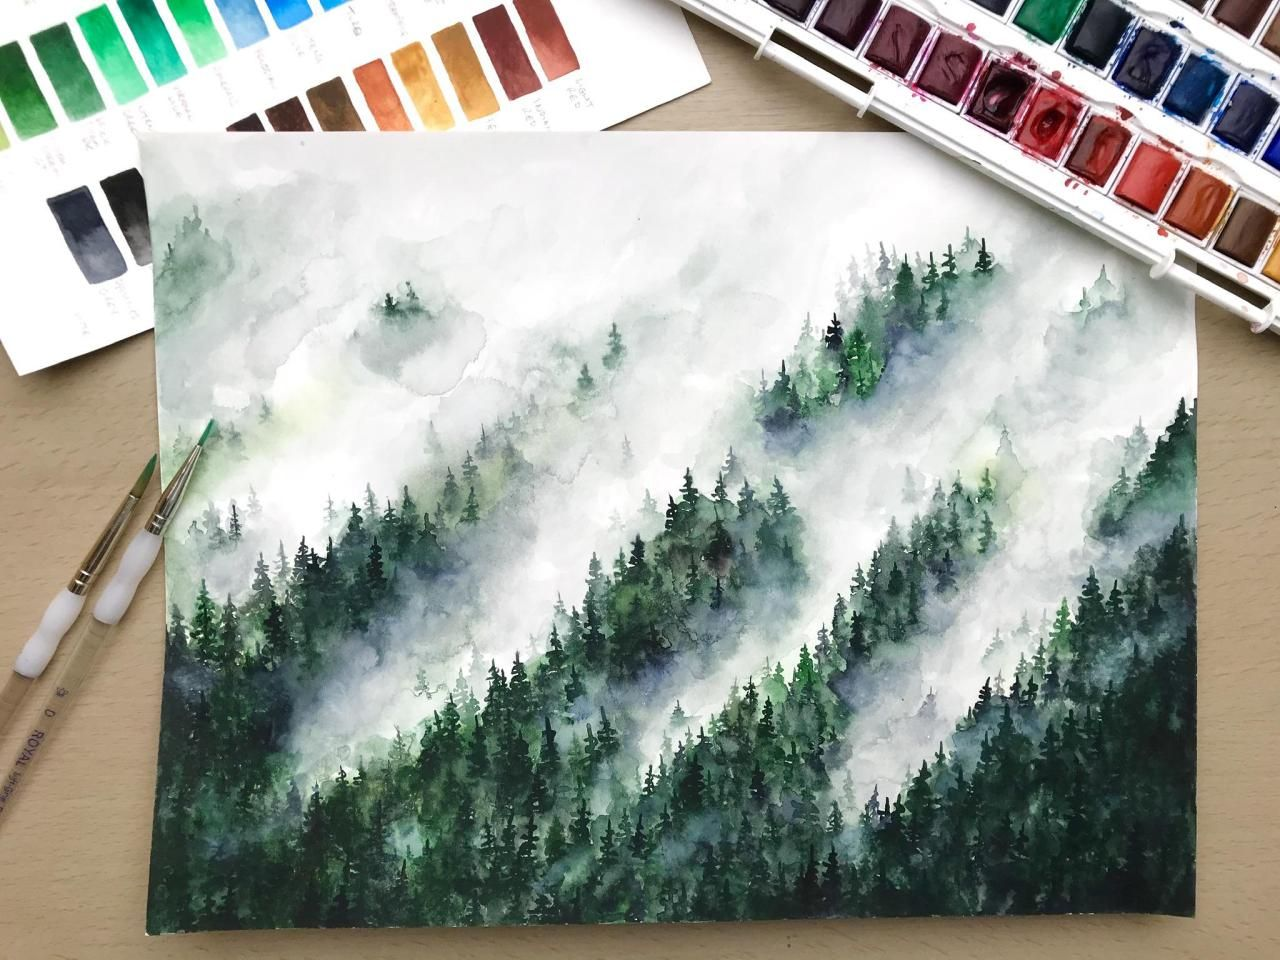 Watercolour Misty Forest Painting Missing Nature During This Lockdown Time Forest Painting Misty Forest Watercolor